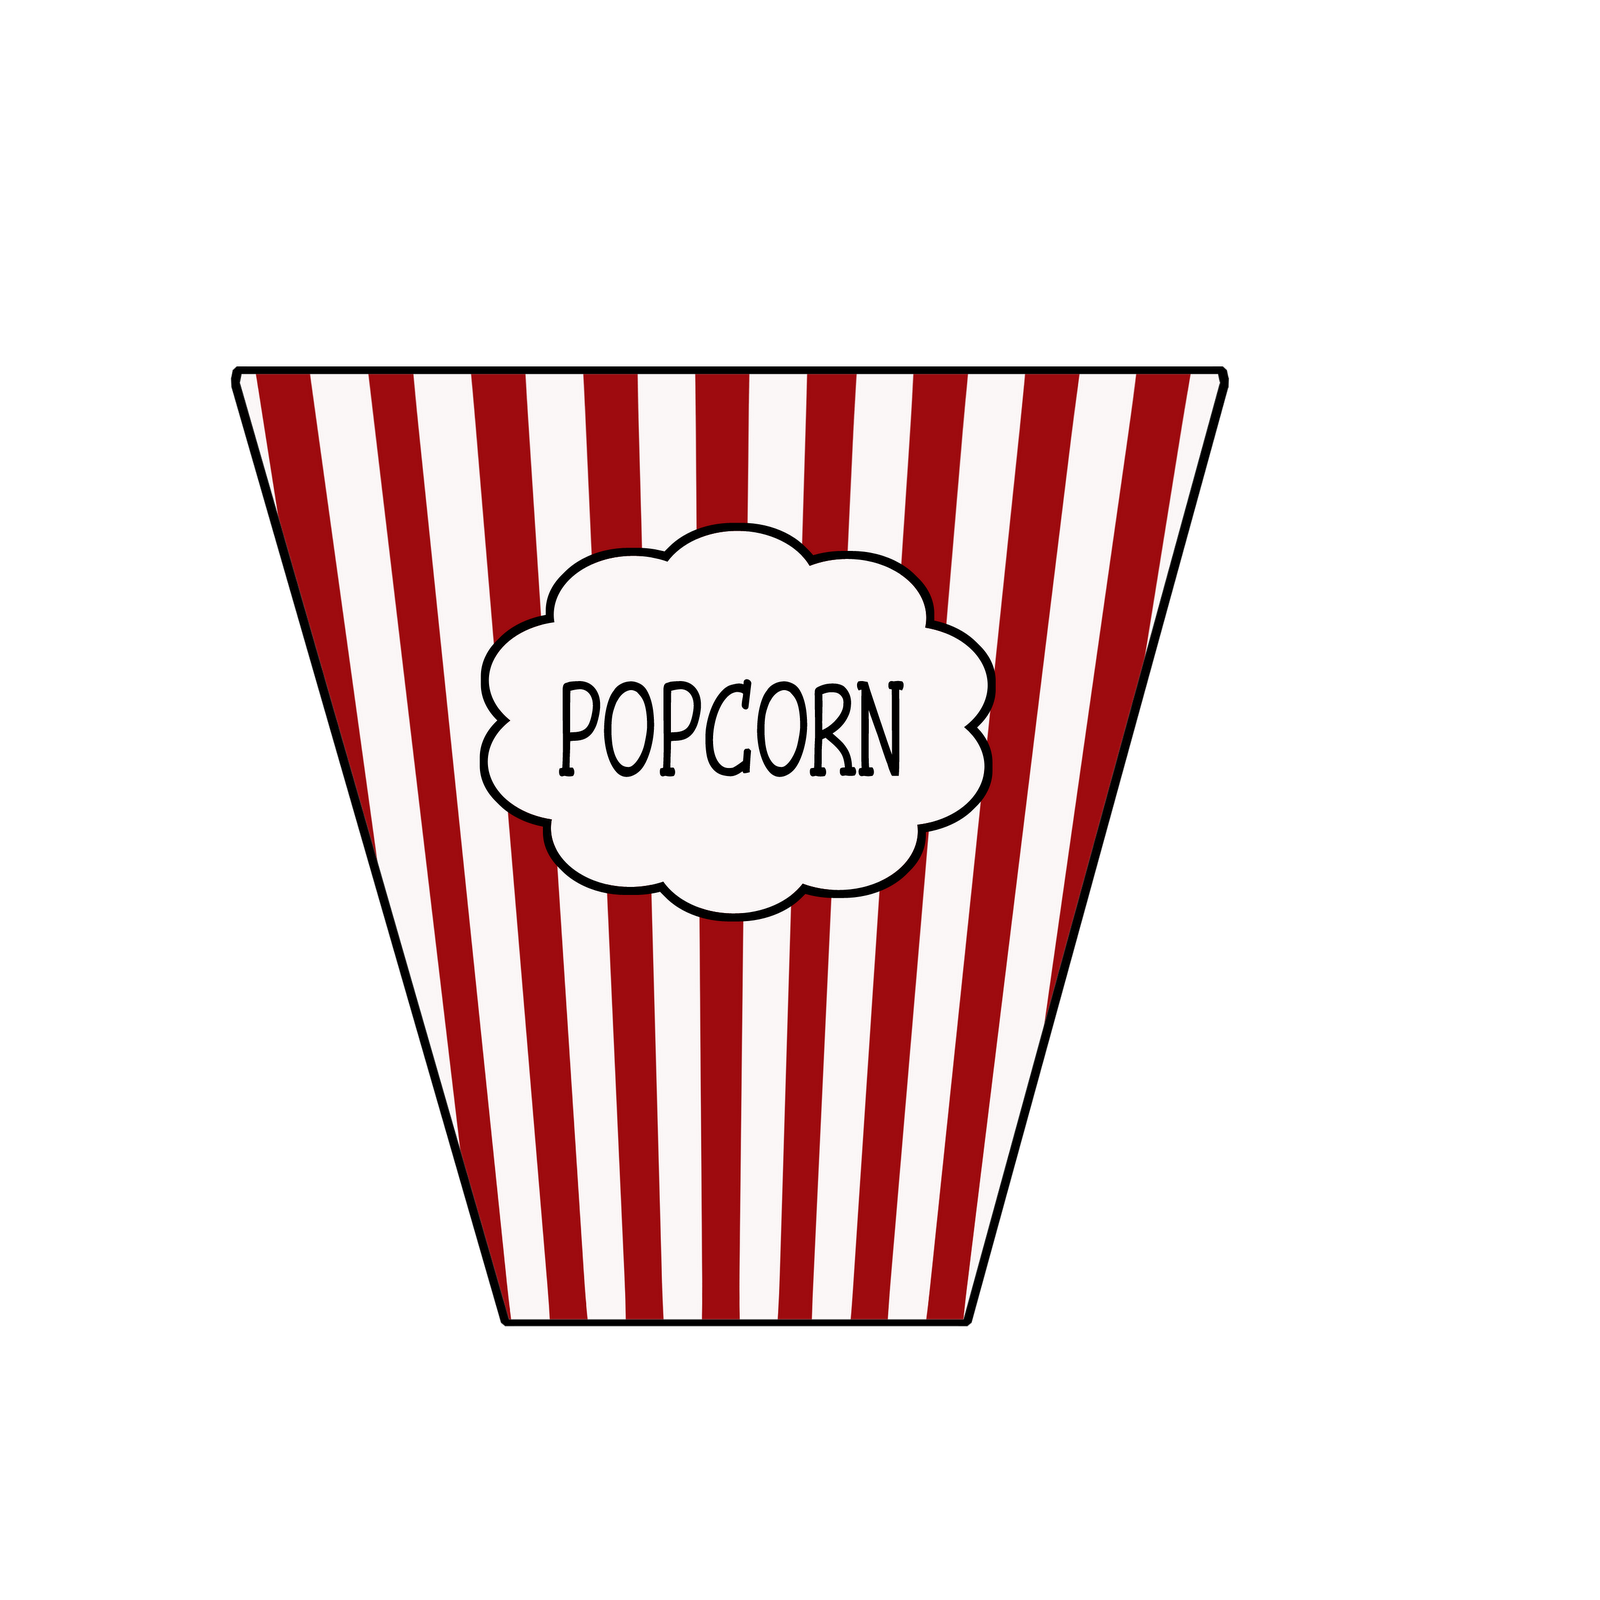 Feet clipart red. Popcorn box hands cartoon